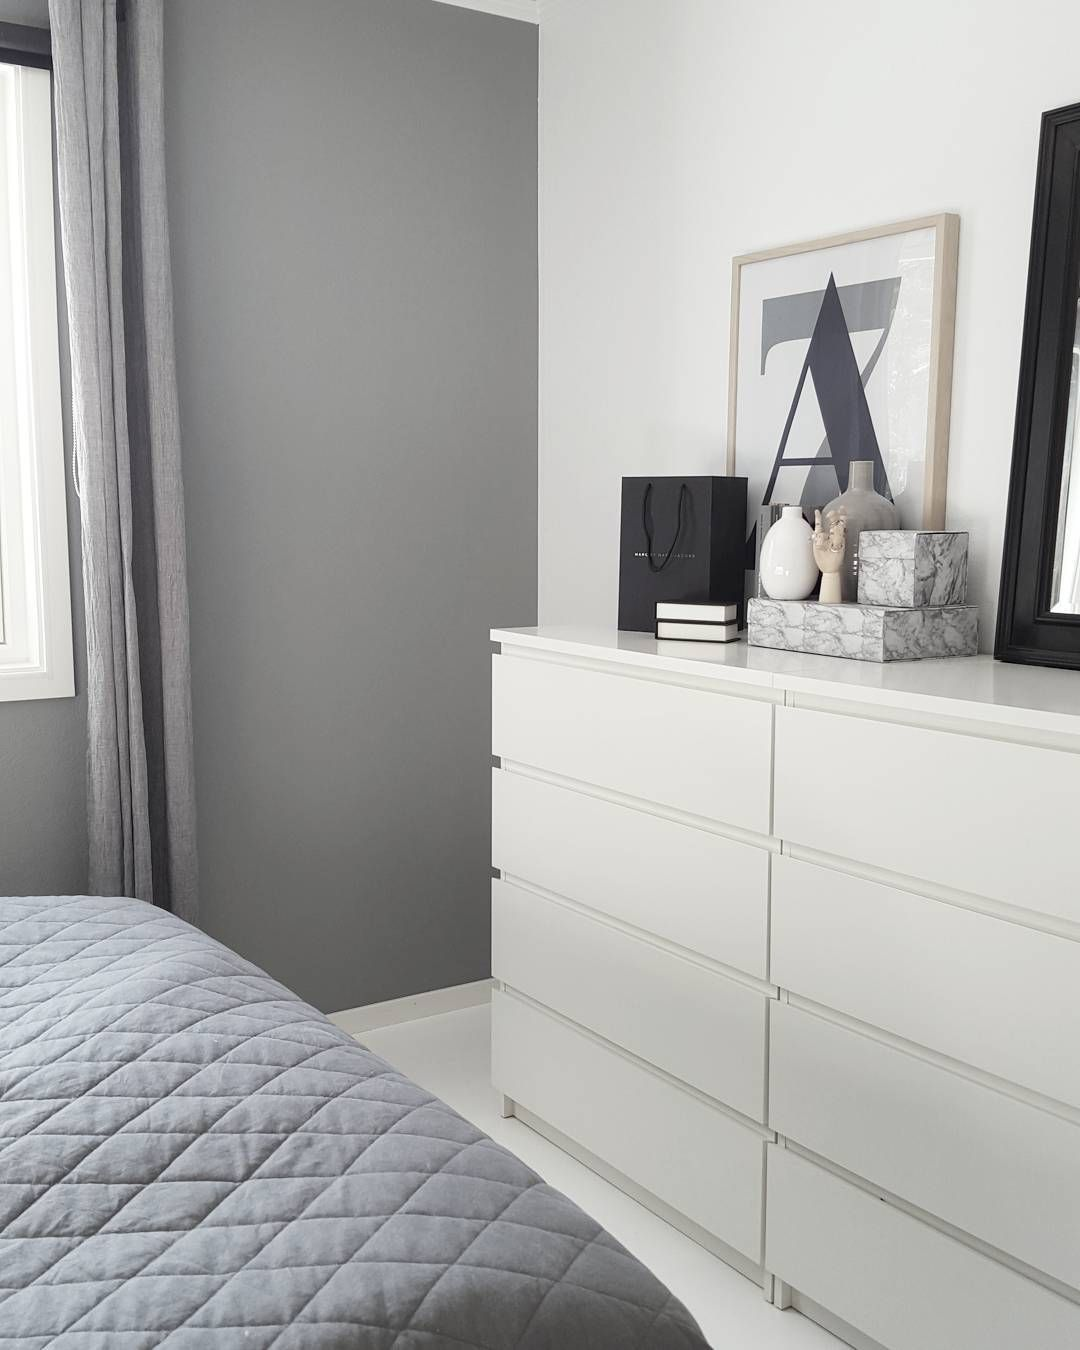 Ikea 'Malm' dressers @ritavalstad (With images) | White